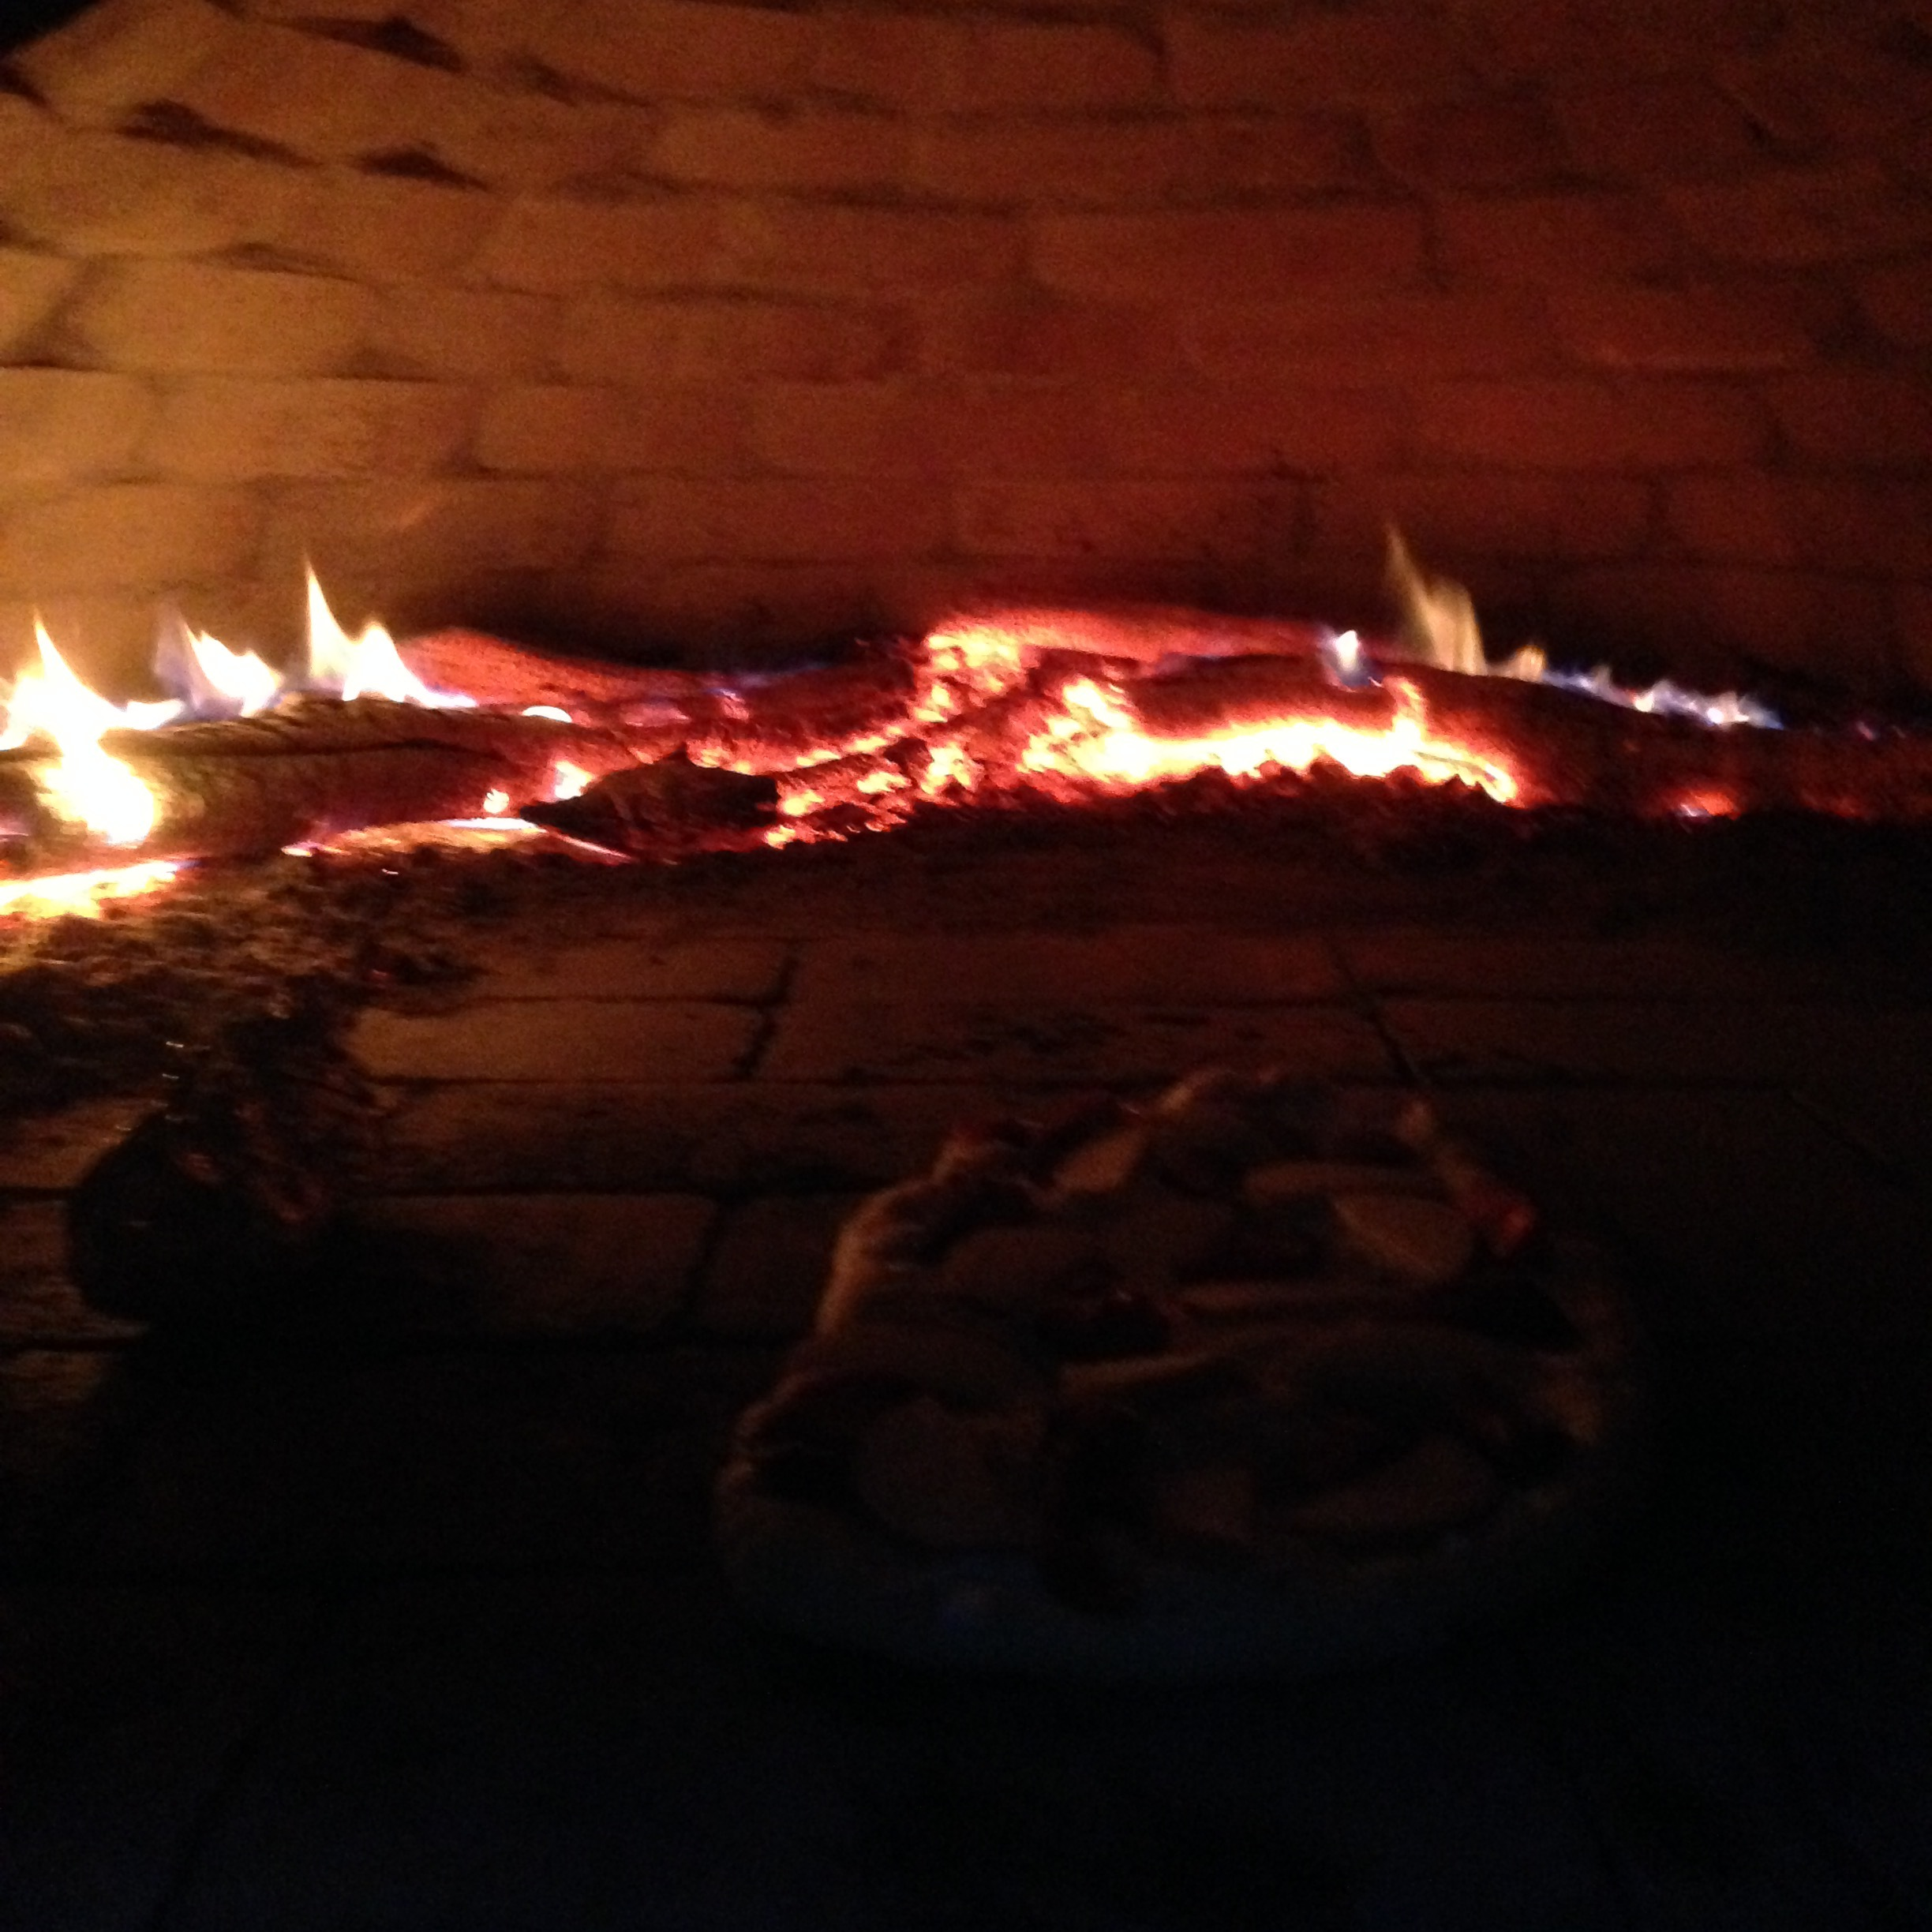 Our residents have been taking full advantage of the pizza oven that was completed this summer